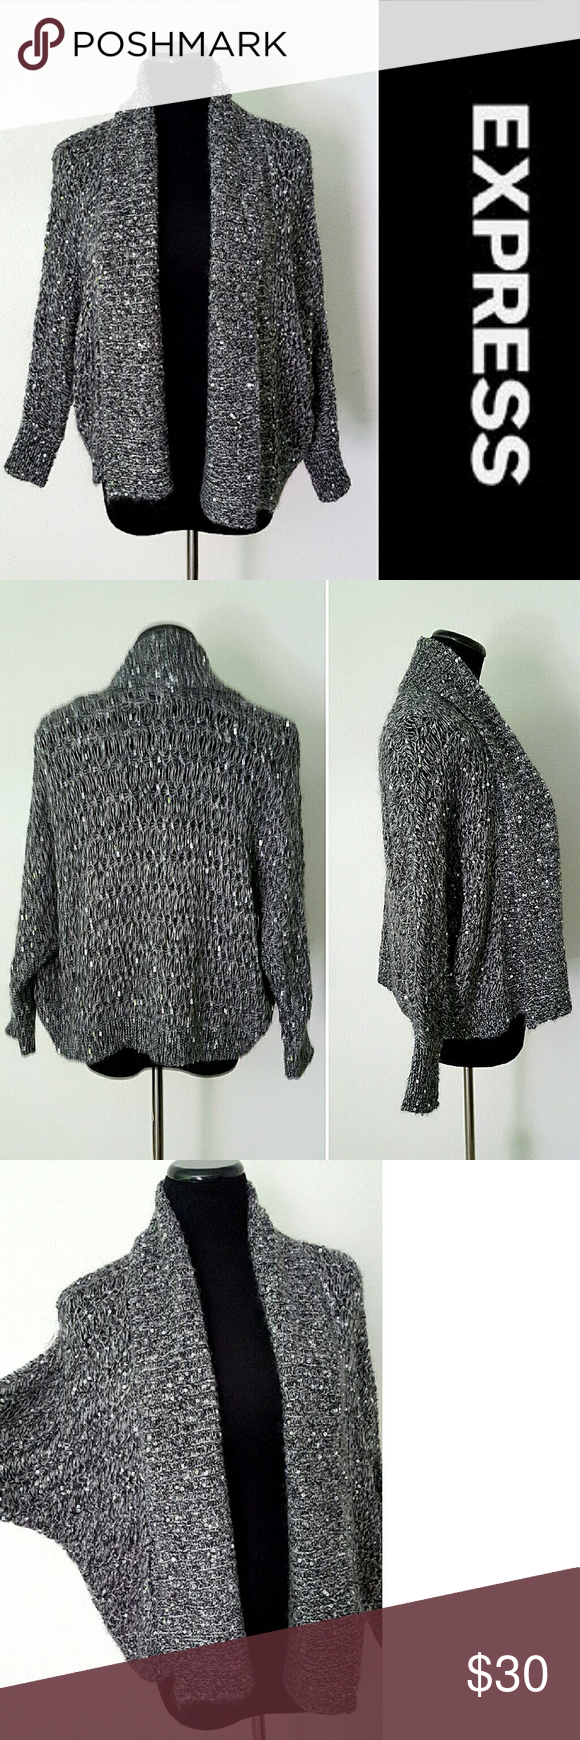 ⬇FINAL PRICE⬇Cable Knit Sequin Cardigan | Sequin cardigan, Cable ...